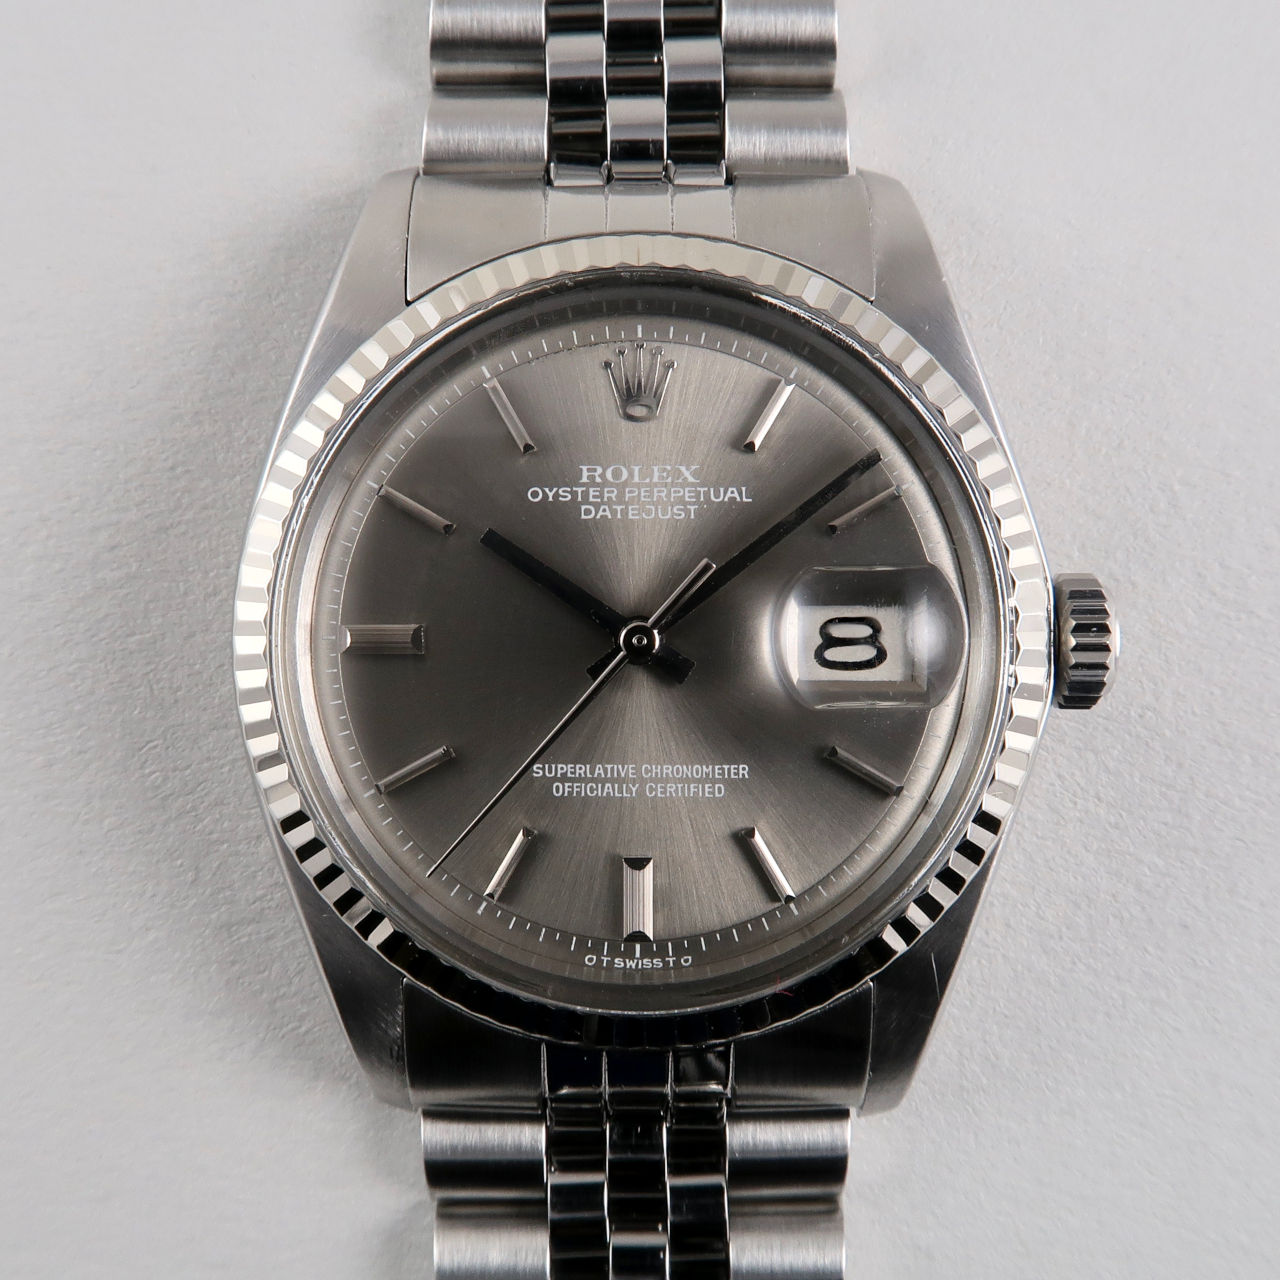 rolex-oyster-perpetual-datejust-ref-1601-dated-1972-v01